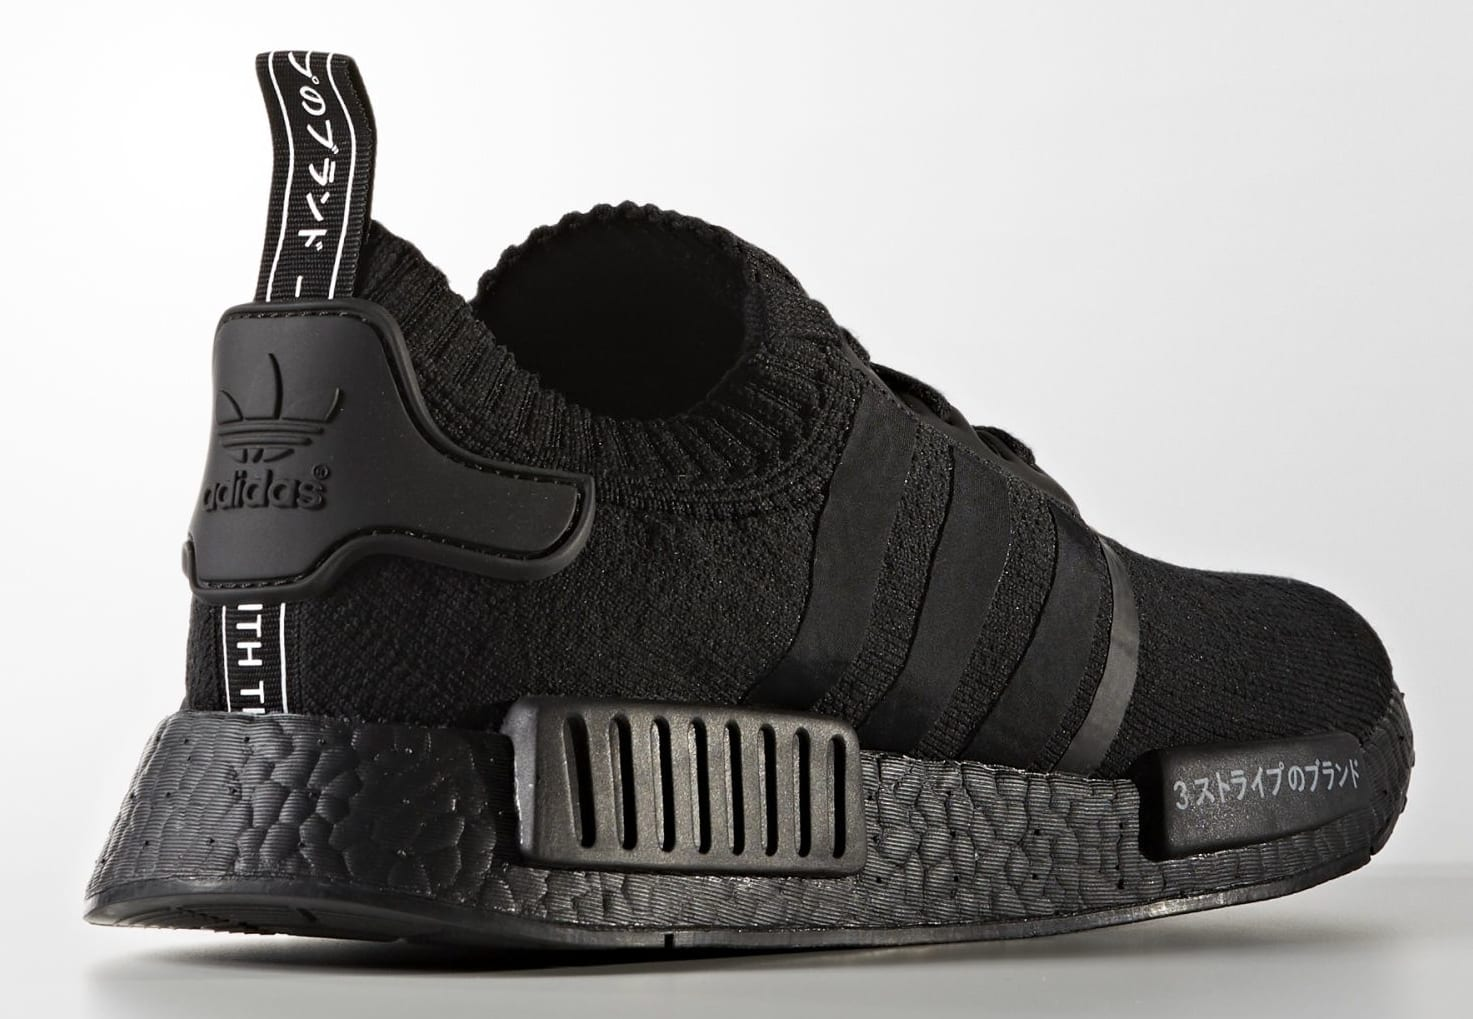 Adidas NMD_R1 PK 'Japan Pack' BZ0220 (Lateral)